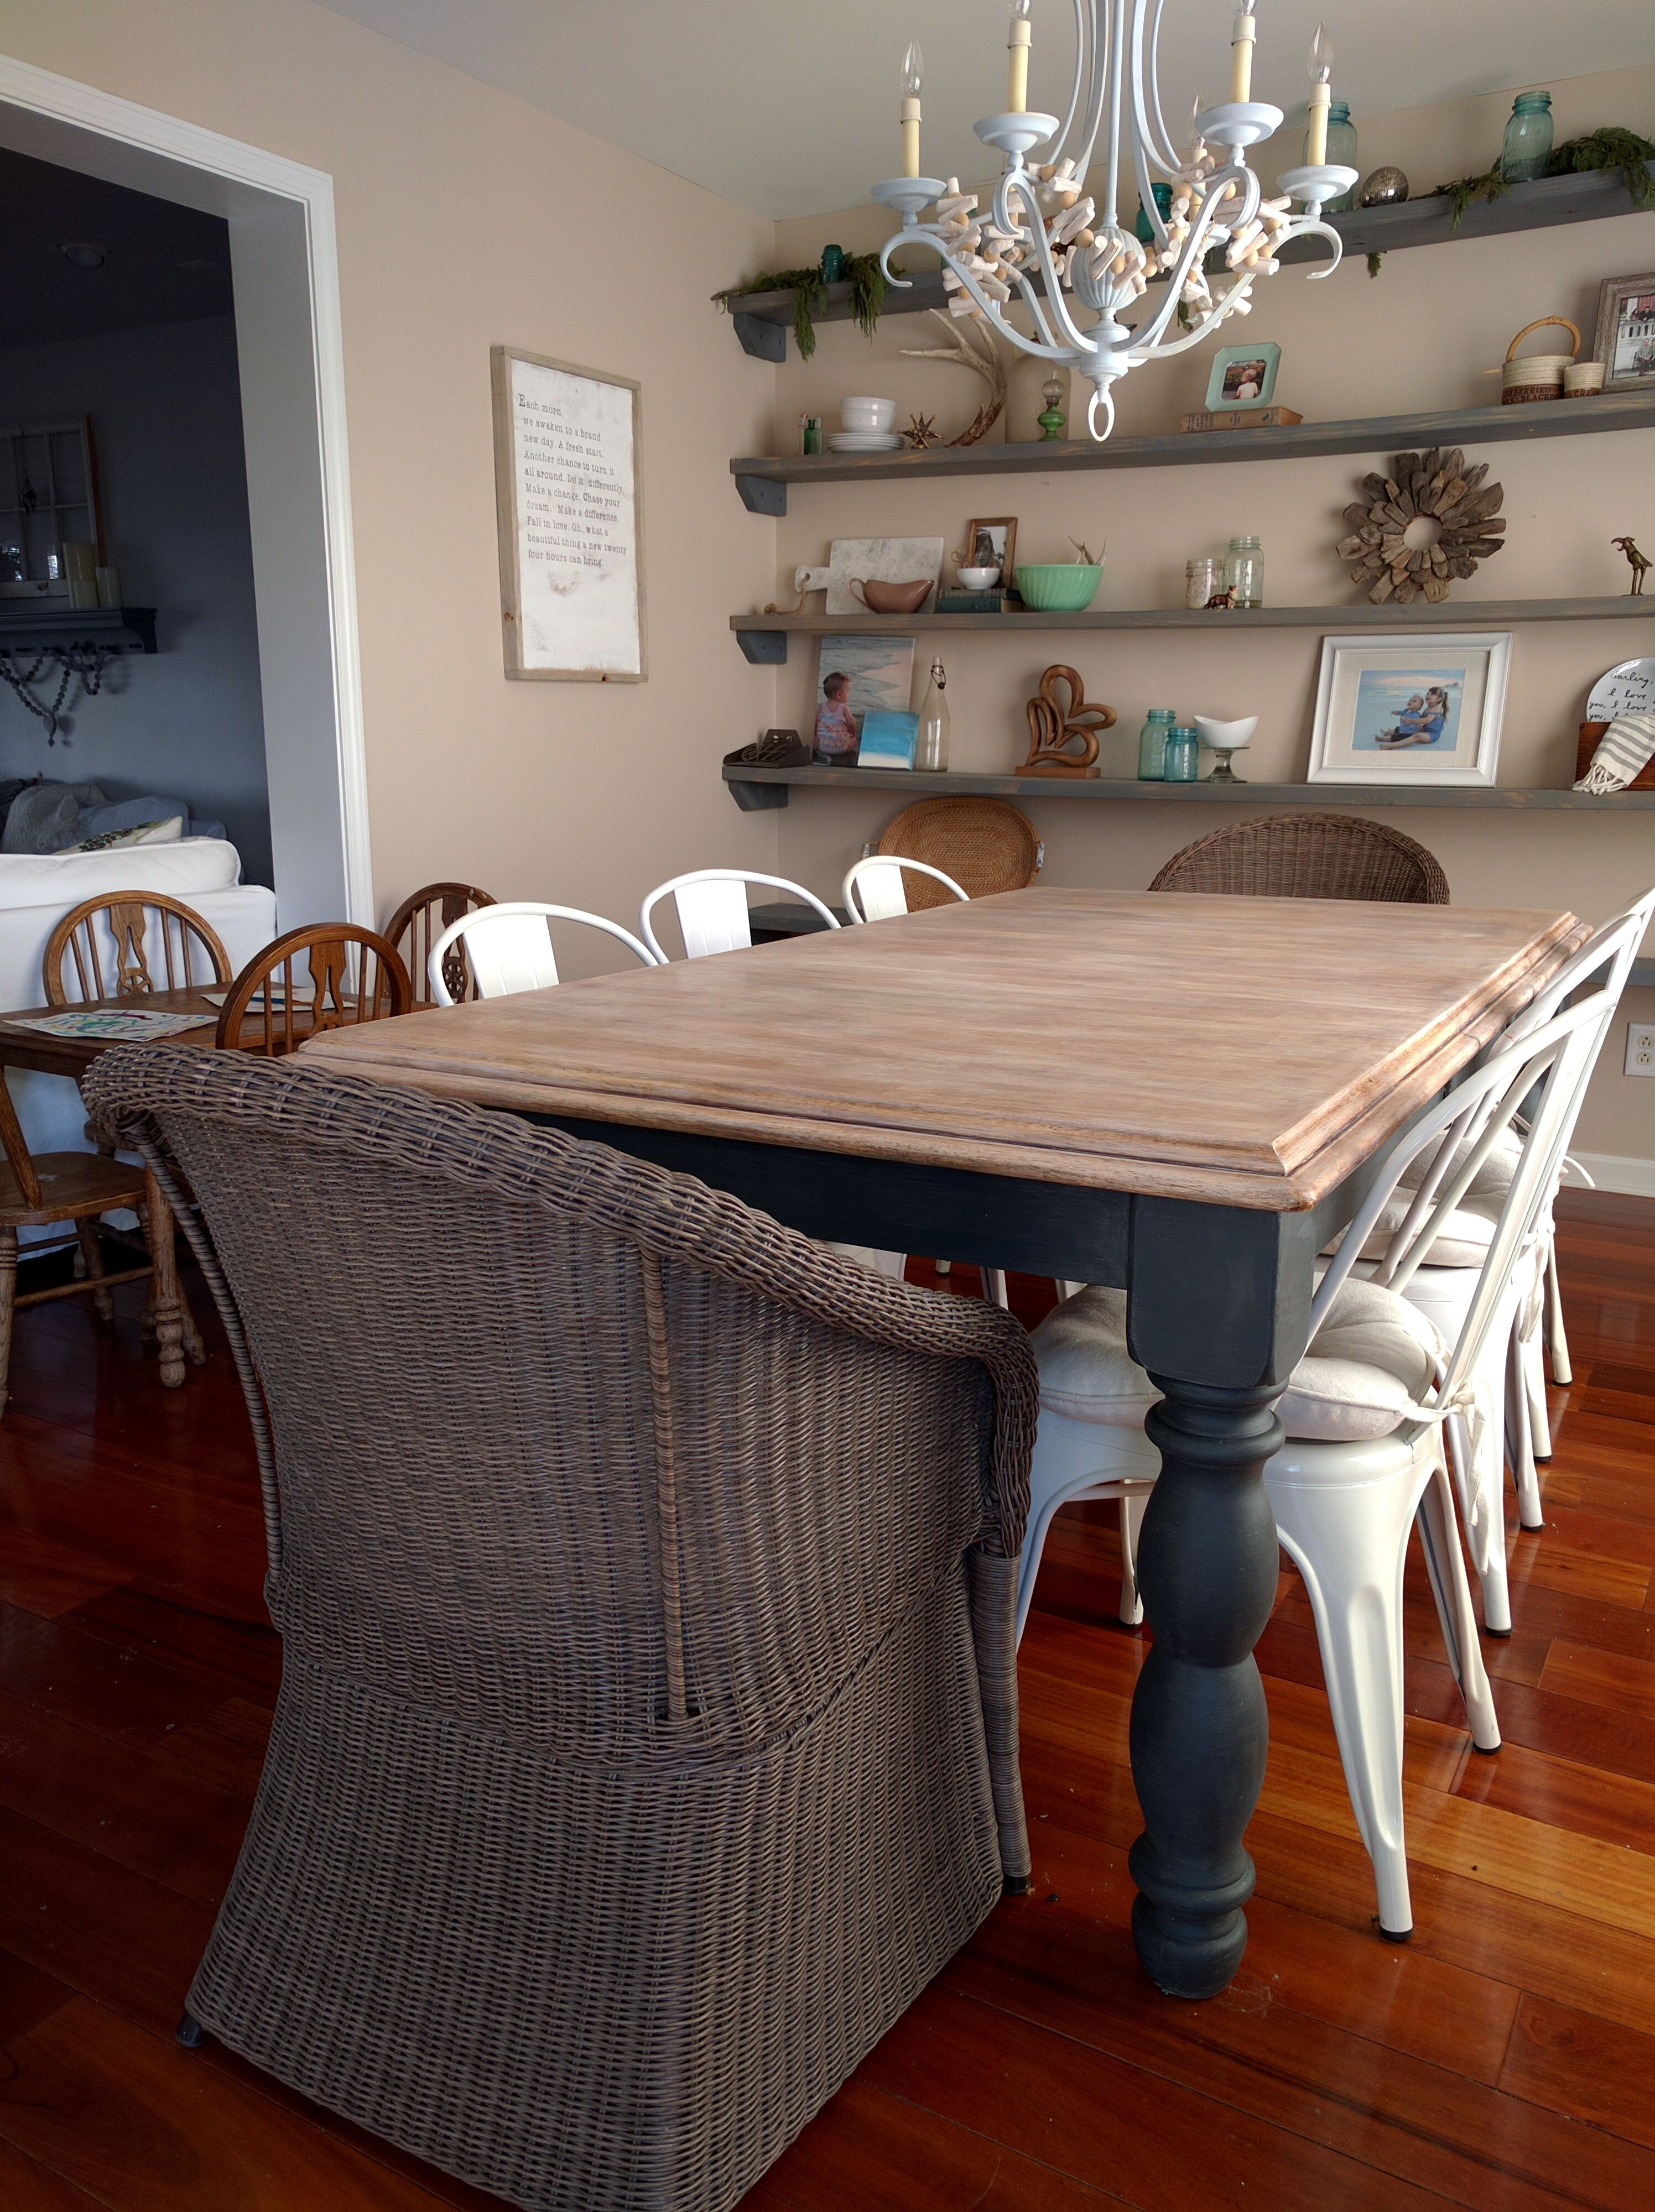 Limewashed Table Makeover Dining Table Makeover Dining Room Table Makeover Shabby Chic Kitchen